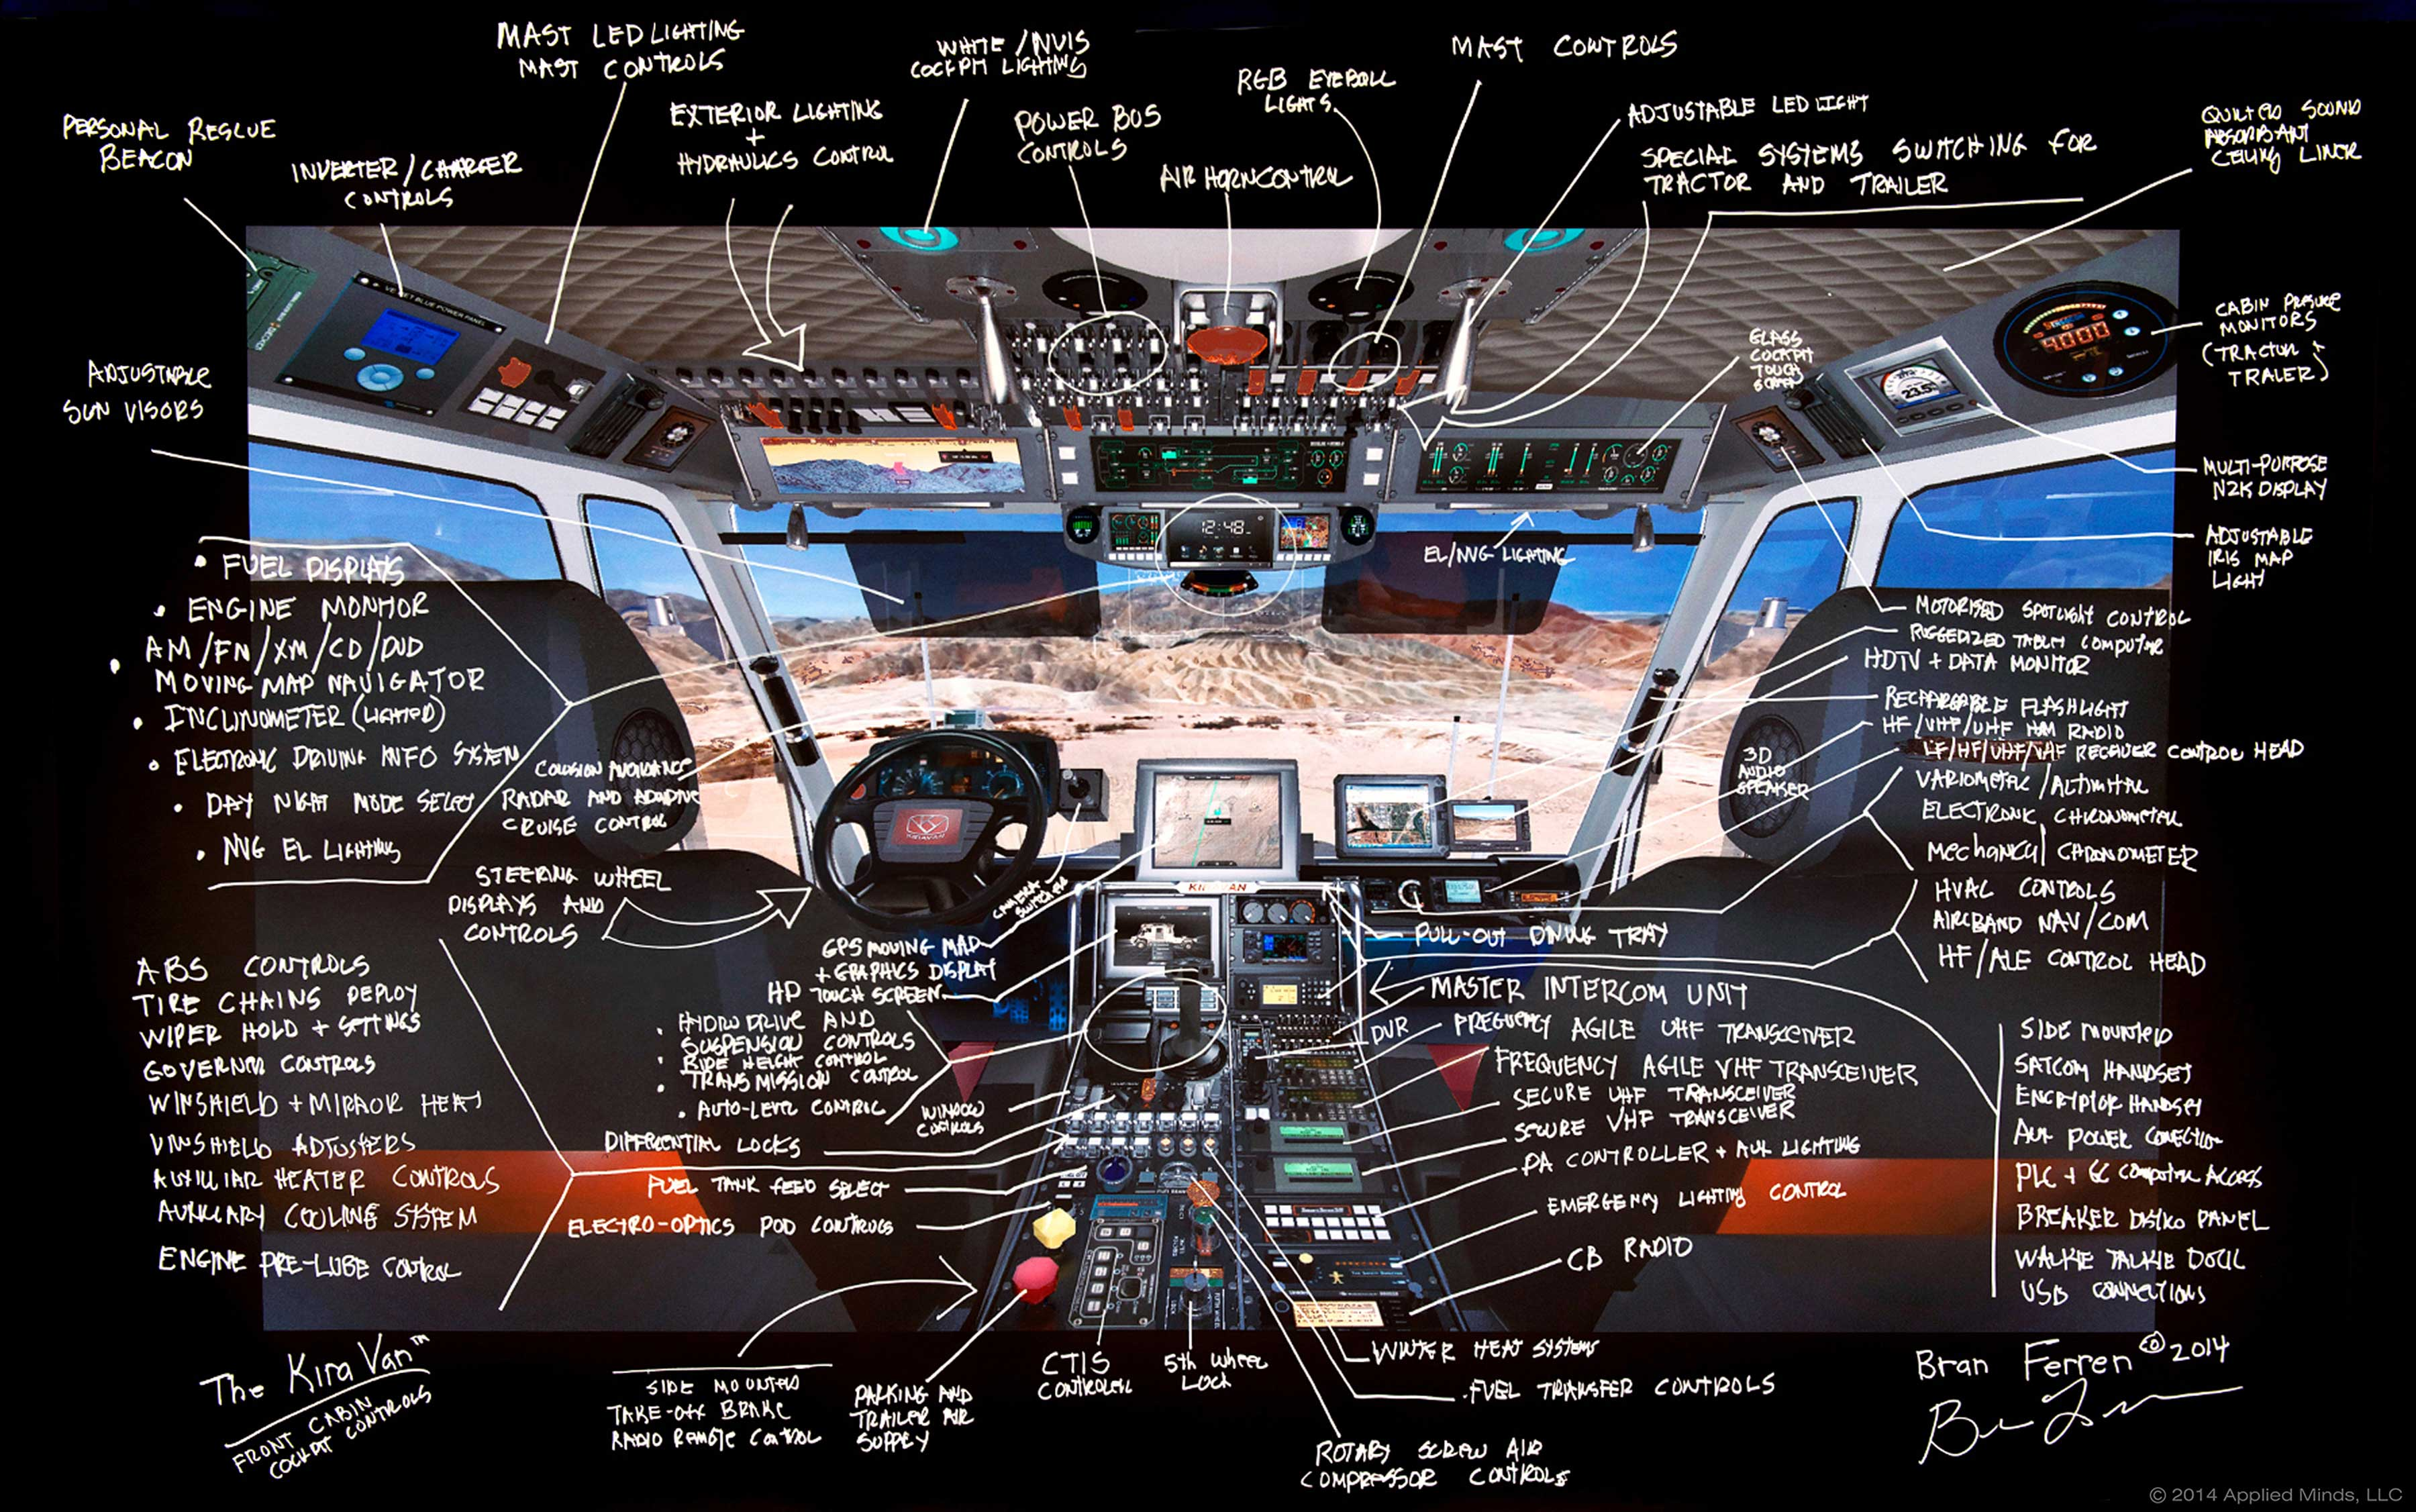 A cockpit view complete with inventor Bran Ferren's annotations.